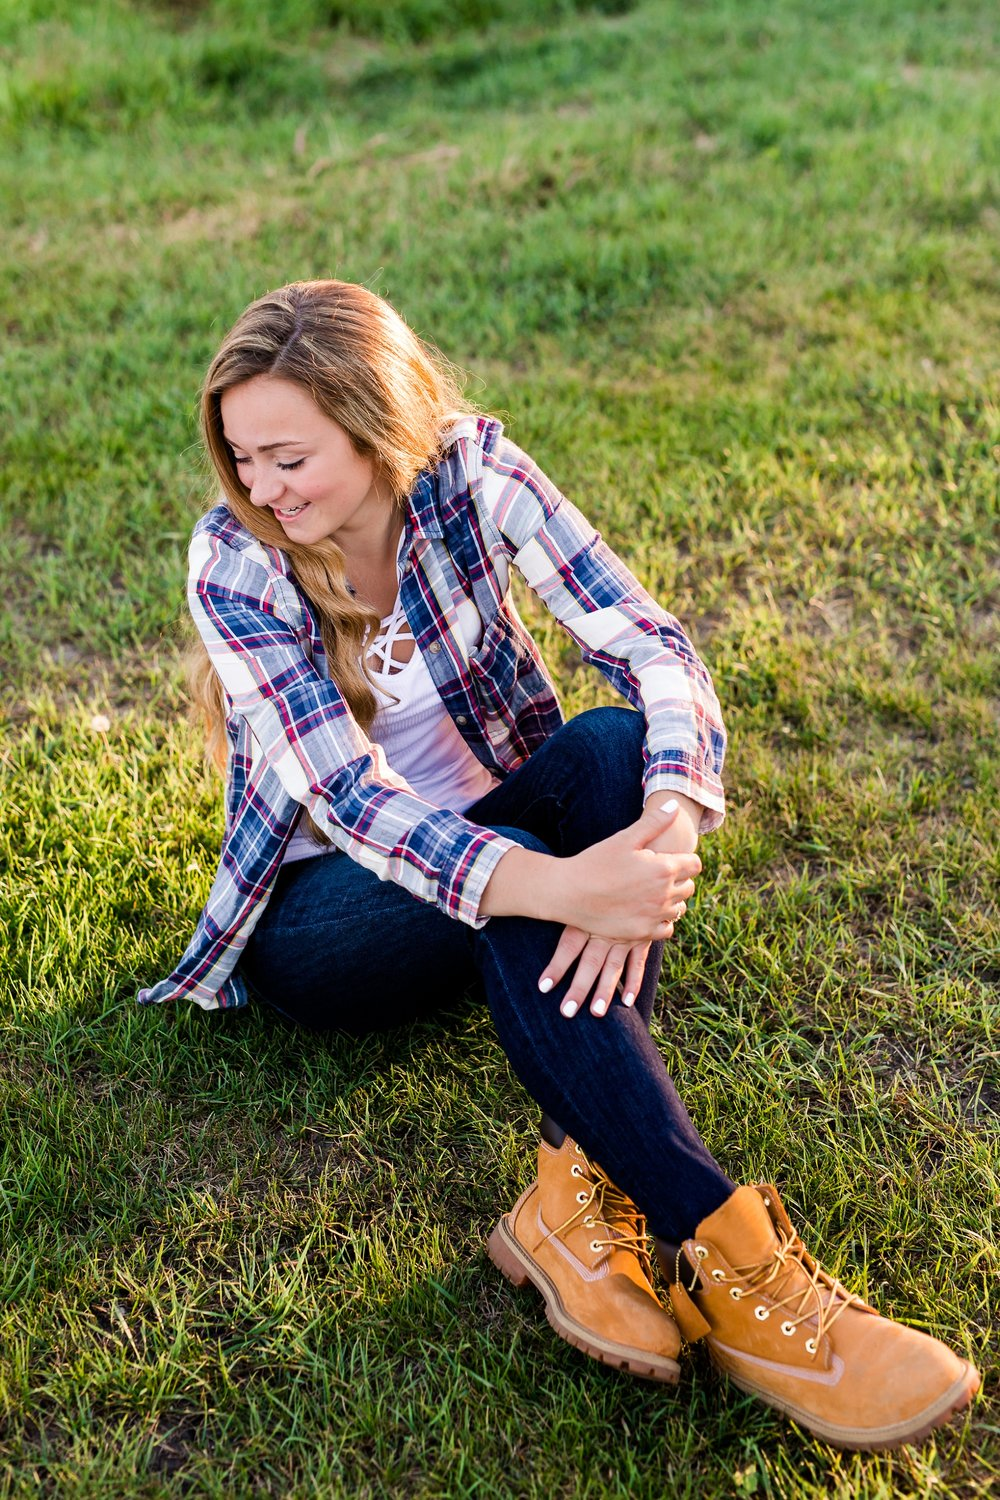 Country Styled High School Senior Pictures on a Farm and Little Cormorant Lake in Minnesota by Amber Langerud with Grass Background